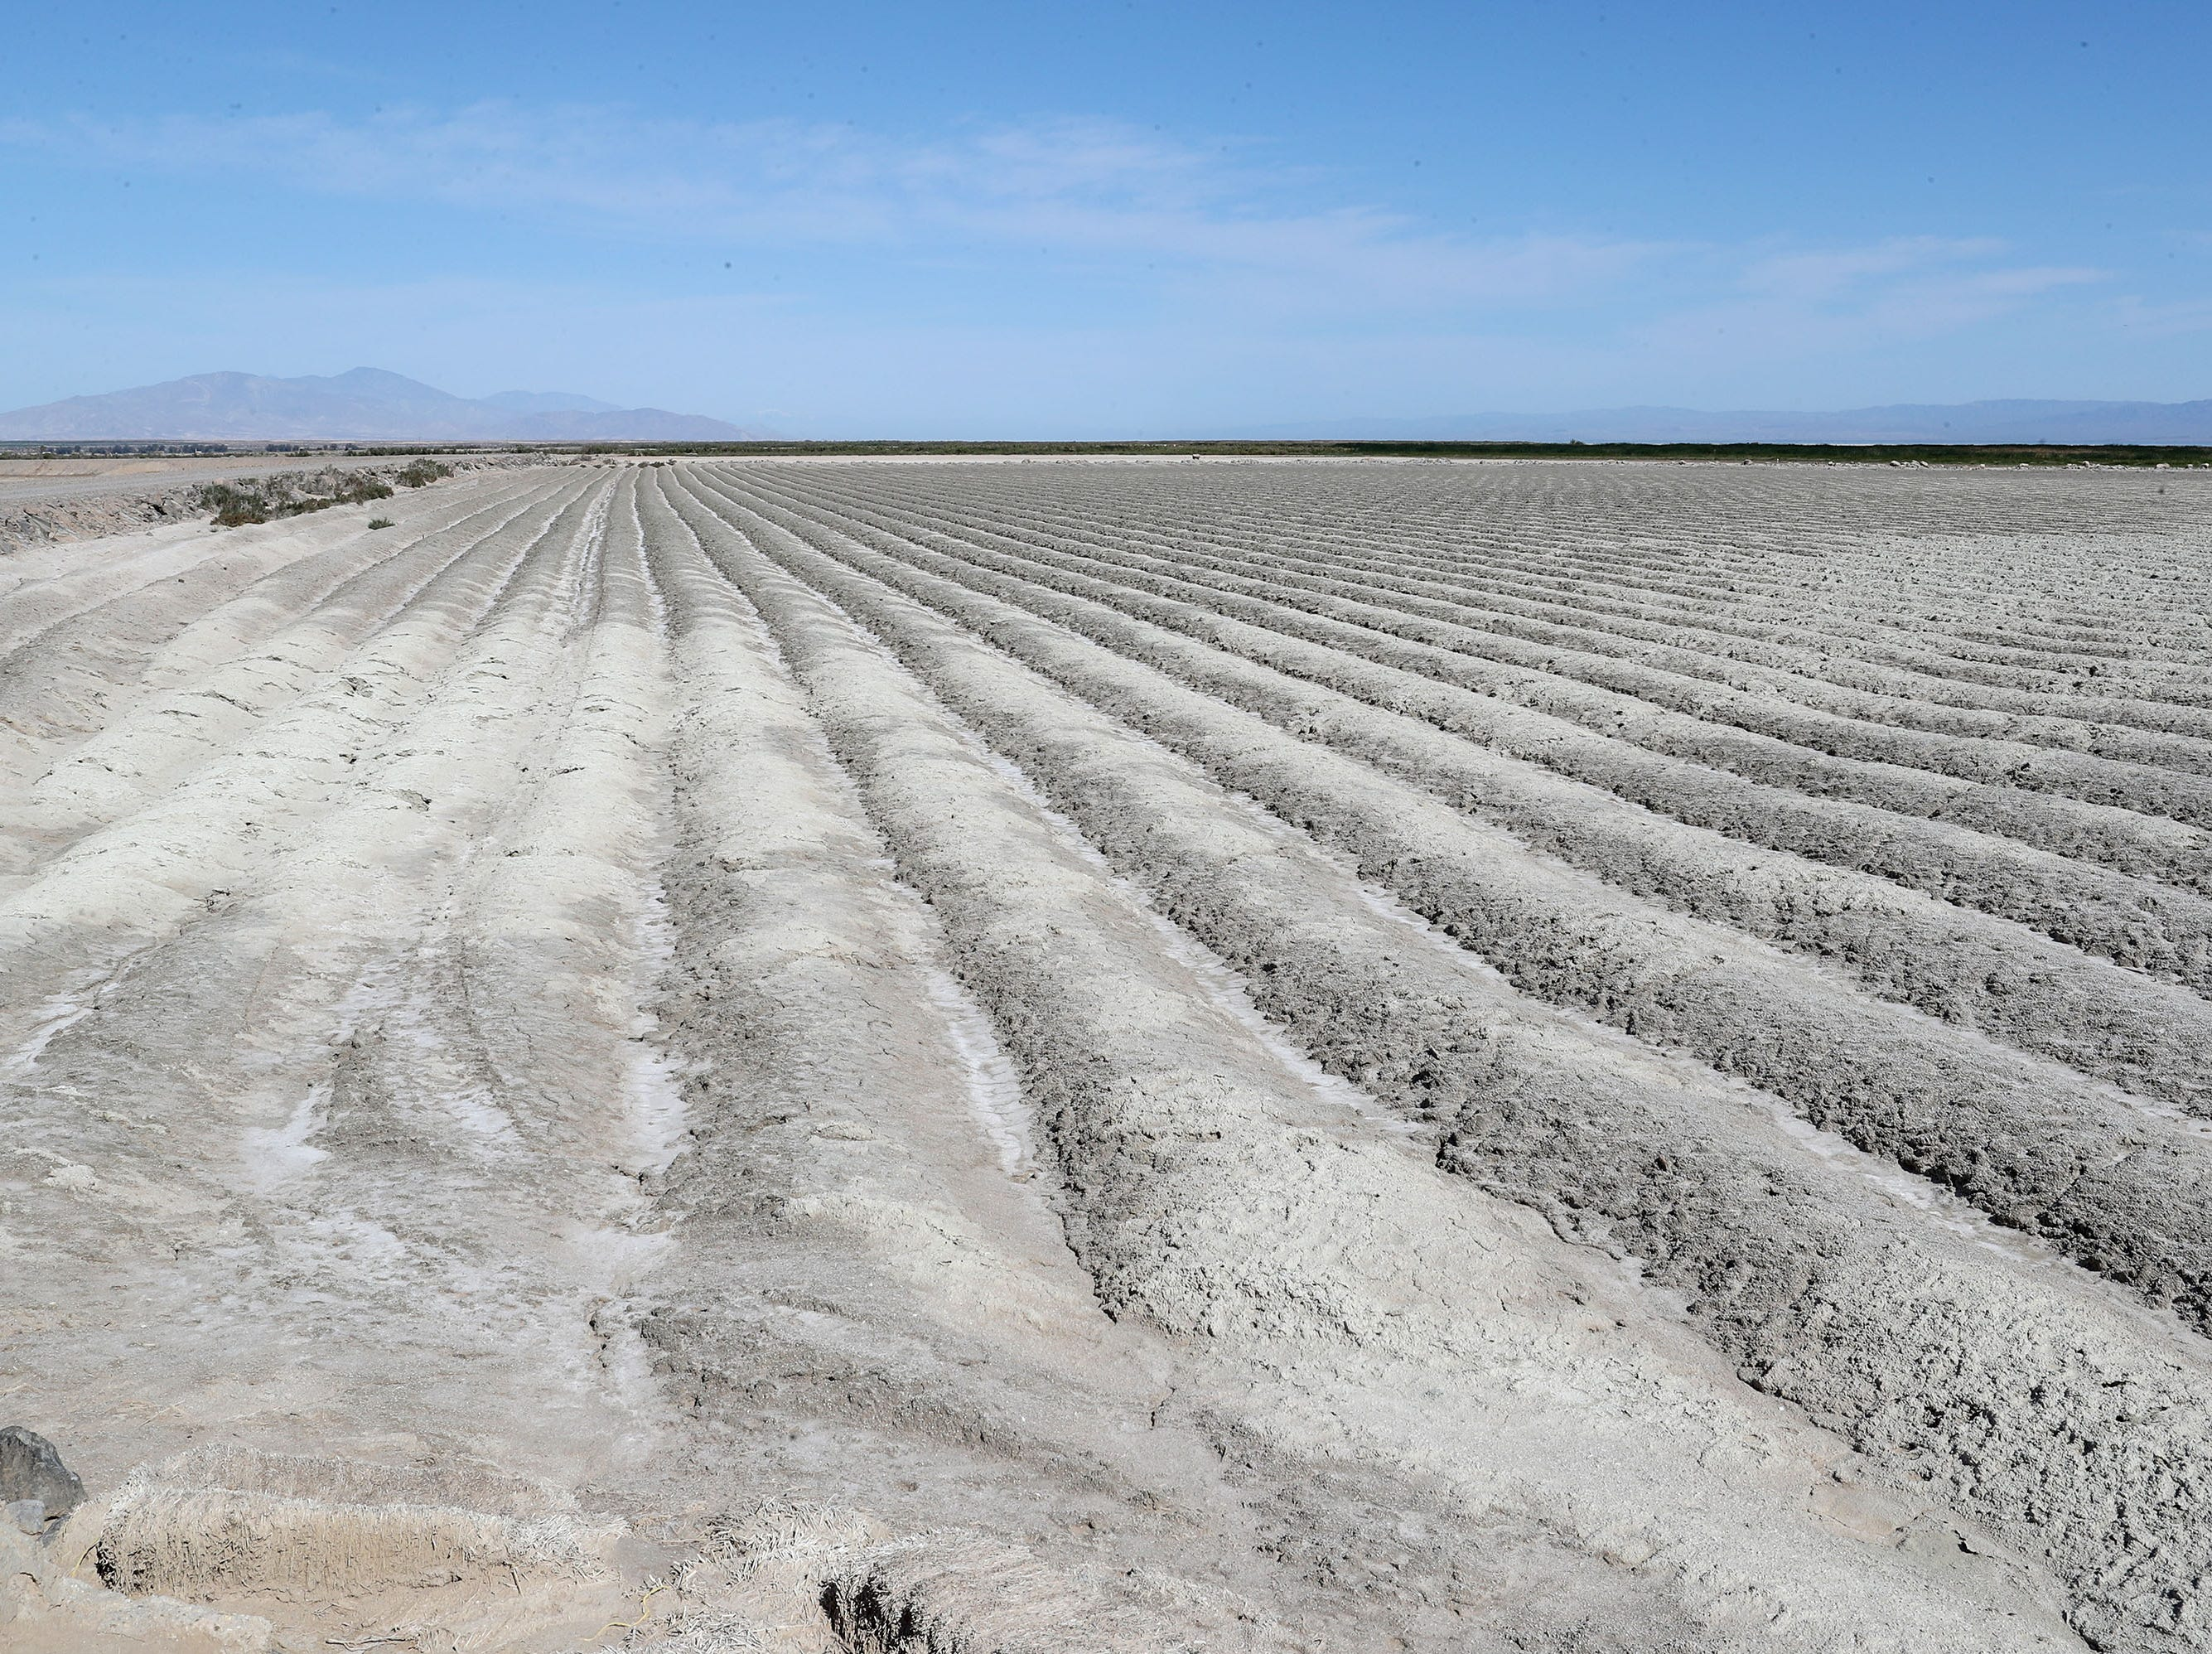 Shallow trenches plowed into exposed playa help cut down on airborne dust as the Salton Sea recedes away from the Elmore Desert Ranch near Brawley, April 11, 2019.